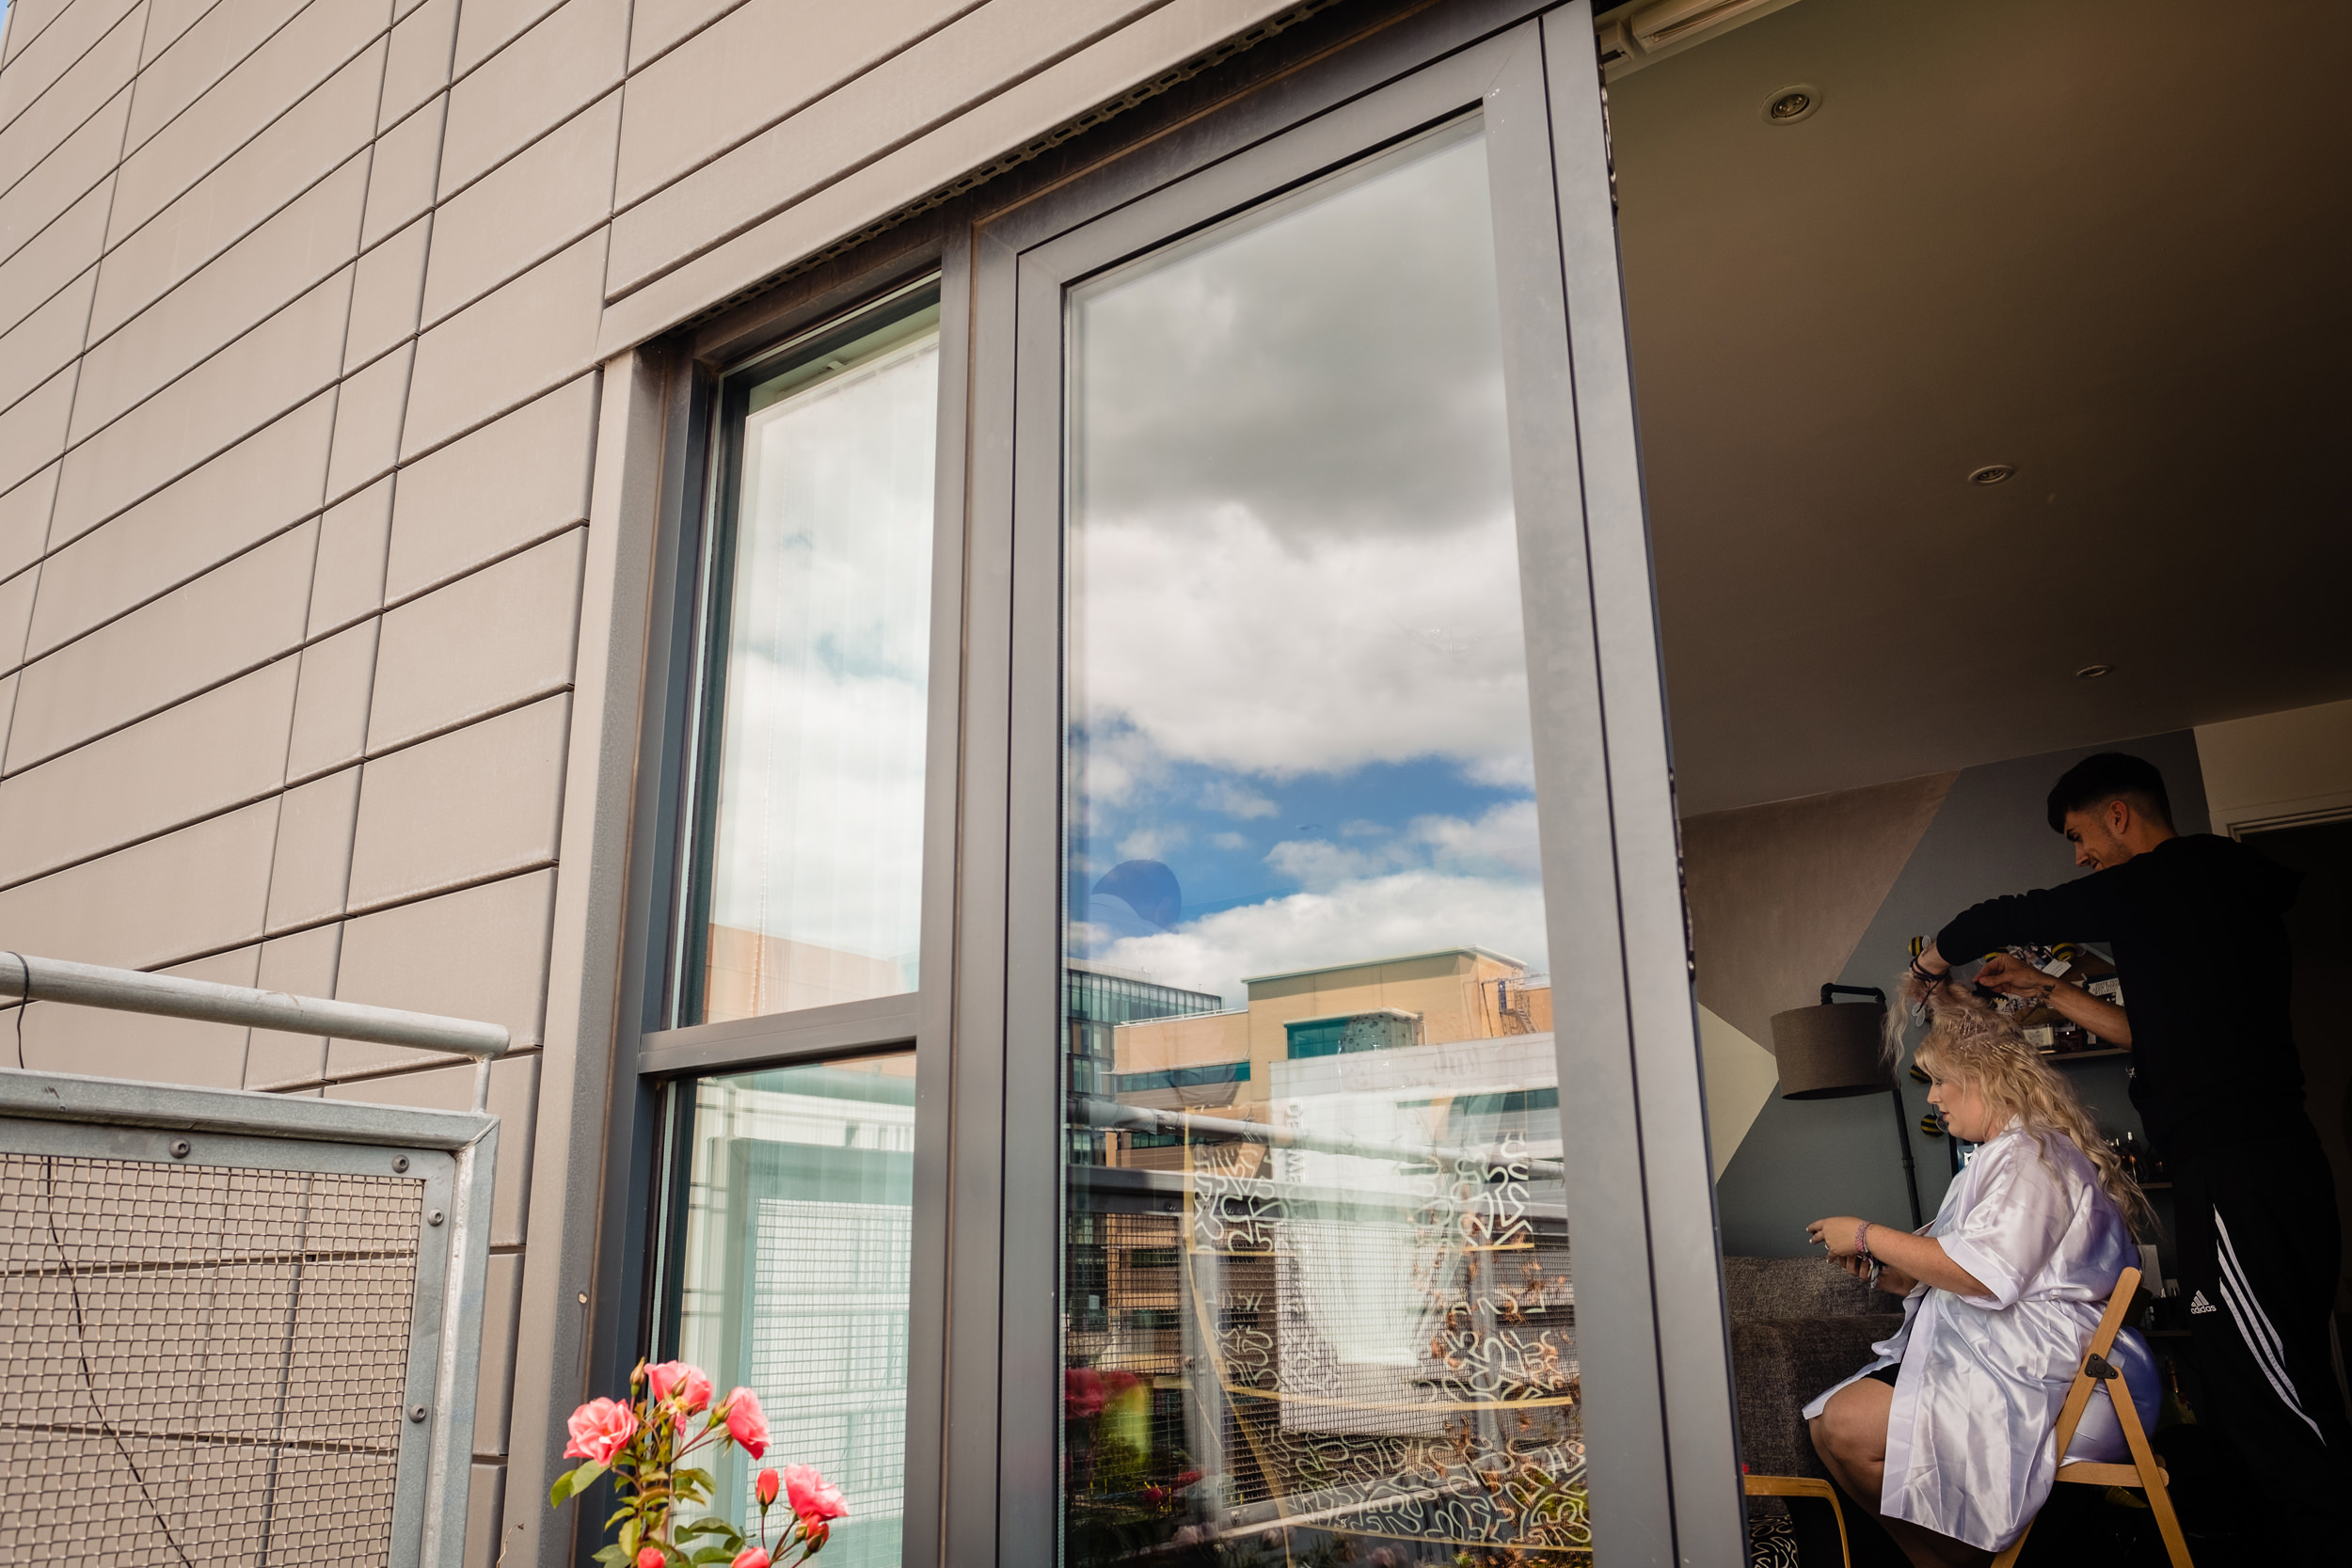 bride having her hair done. city reflected in window. plough inn, hathersage wedding photography by emma and rich.